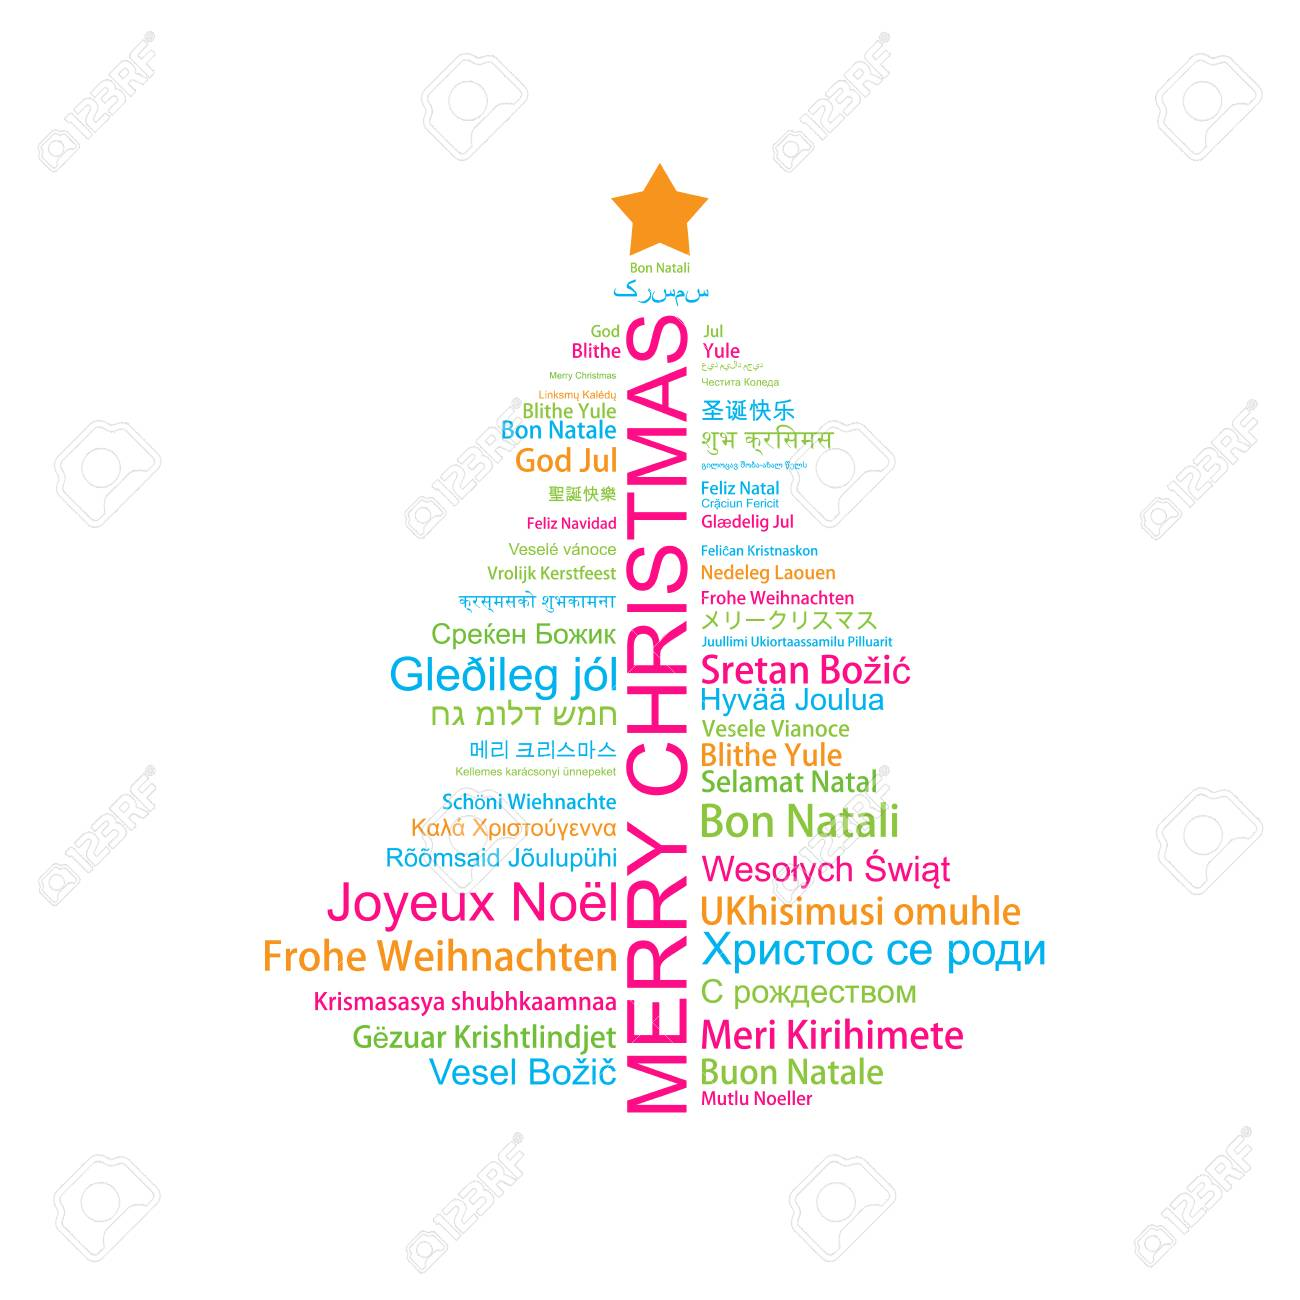 Merry Christmas In Different Languages.Merry Christmas In Different Languages In The Shape Of Christmas